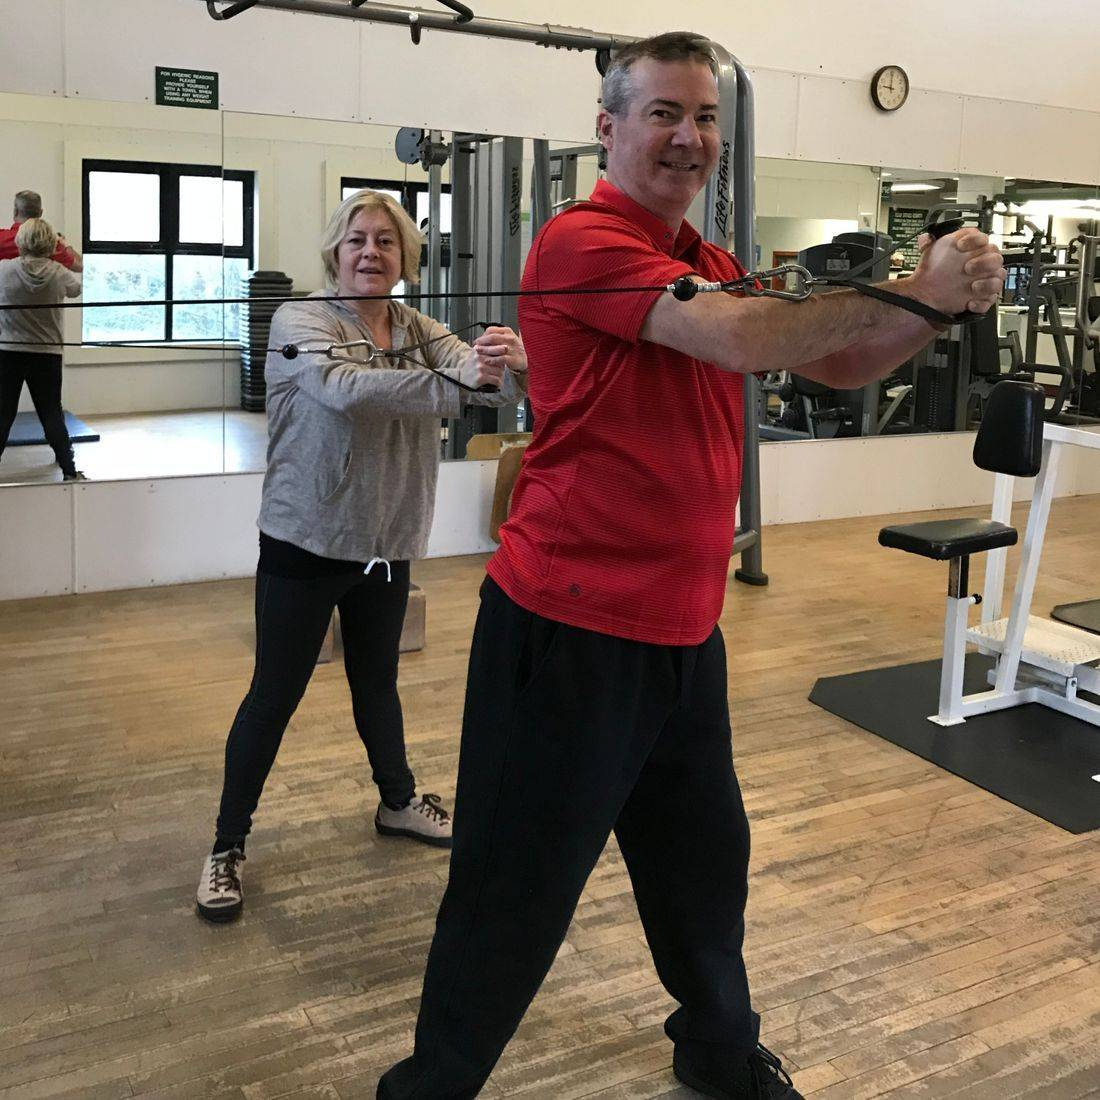 Personal Training, Personal Trainer, Fitness Coach, Partner Training